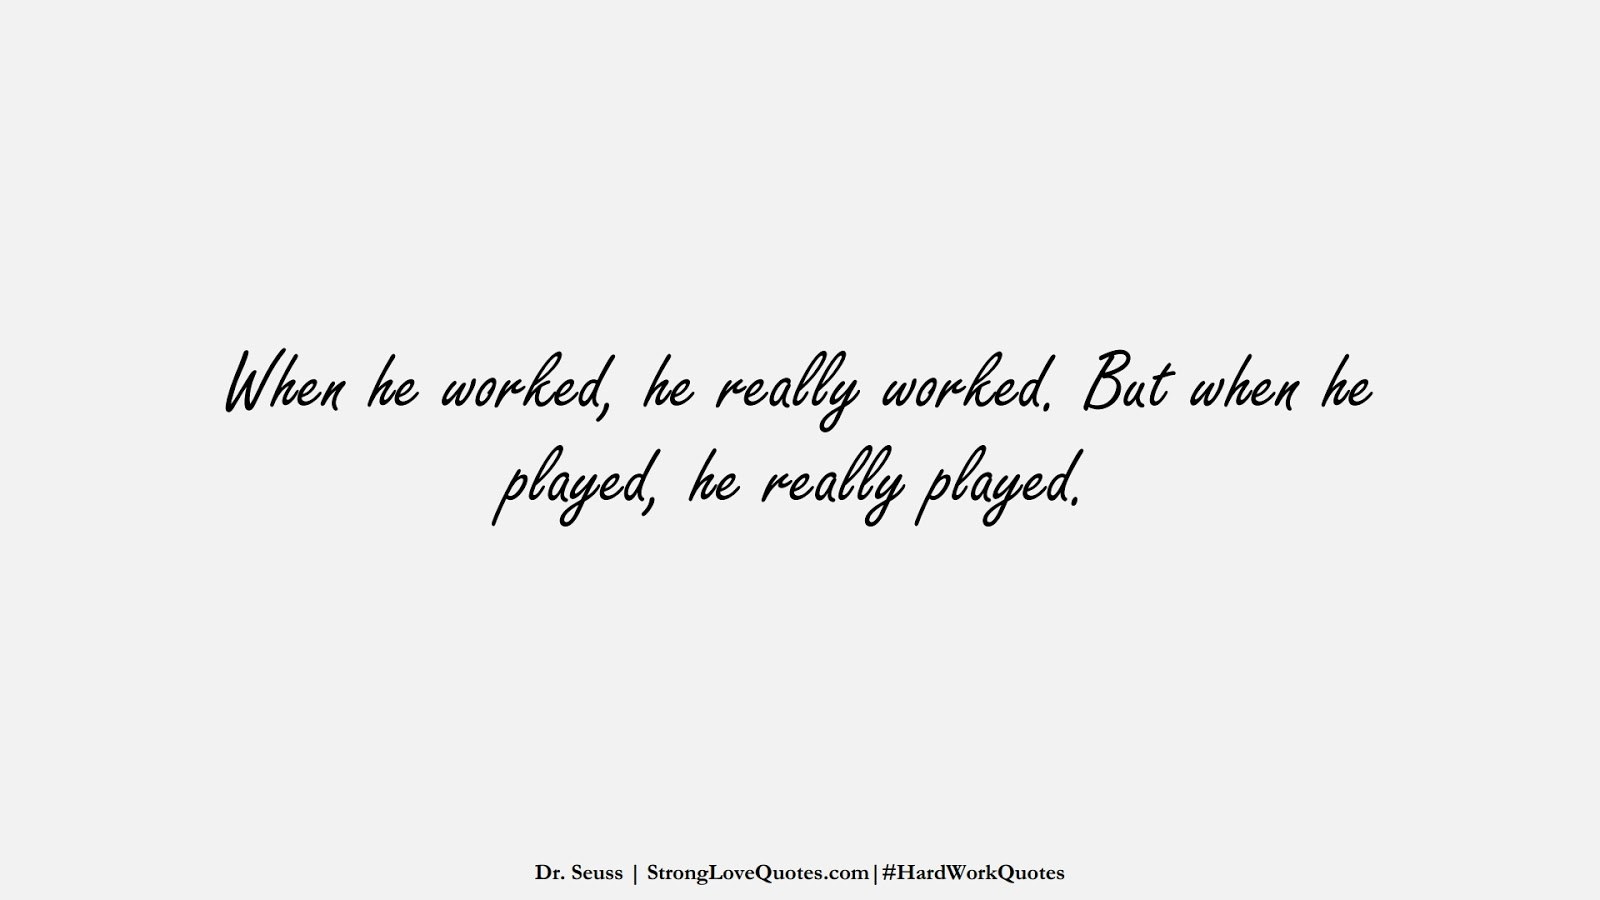 When he worked, he really worked. But when he played, he really played. (Dr. Seuss);  #HardWorkQuotes